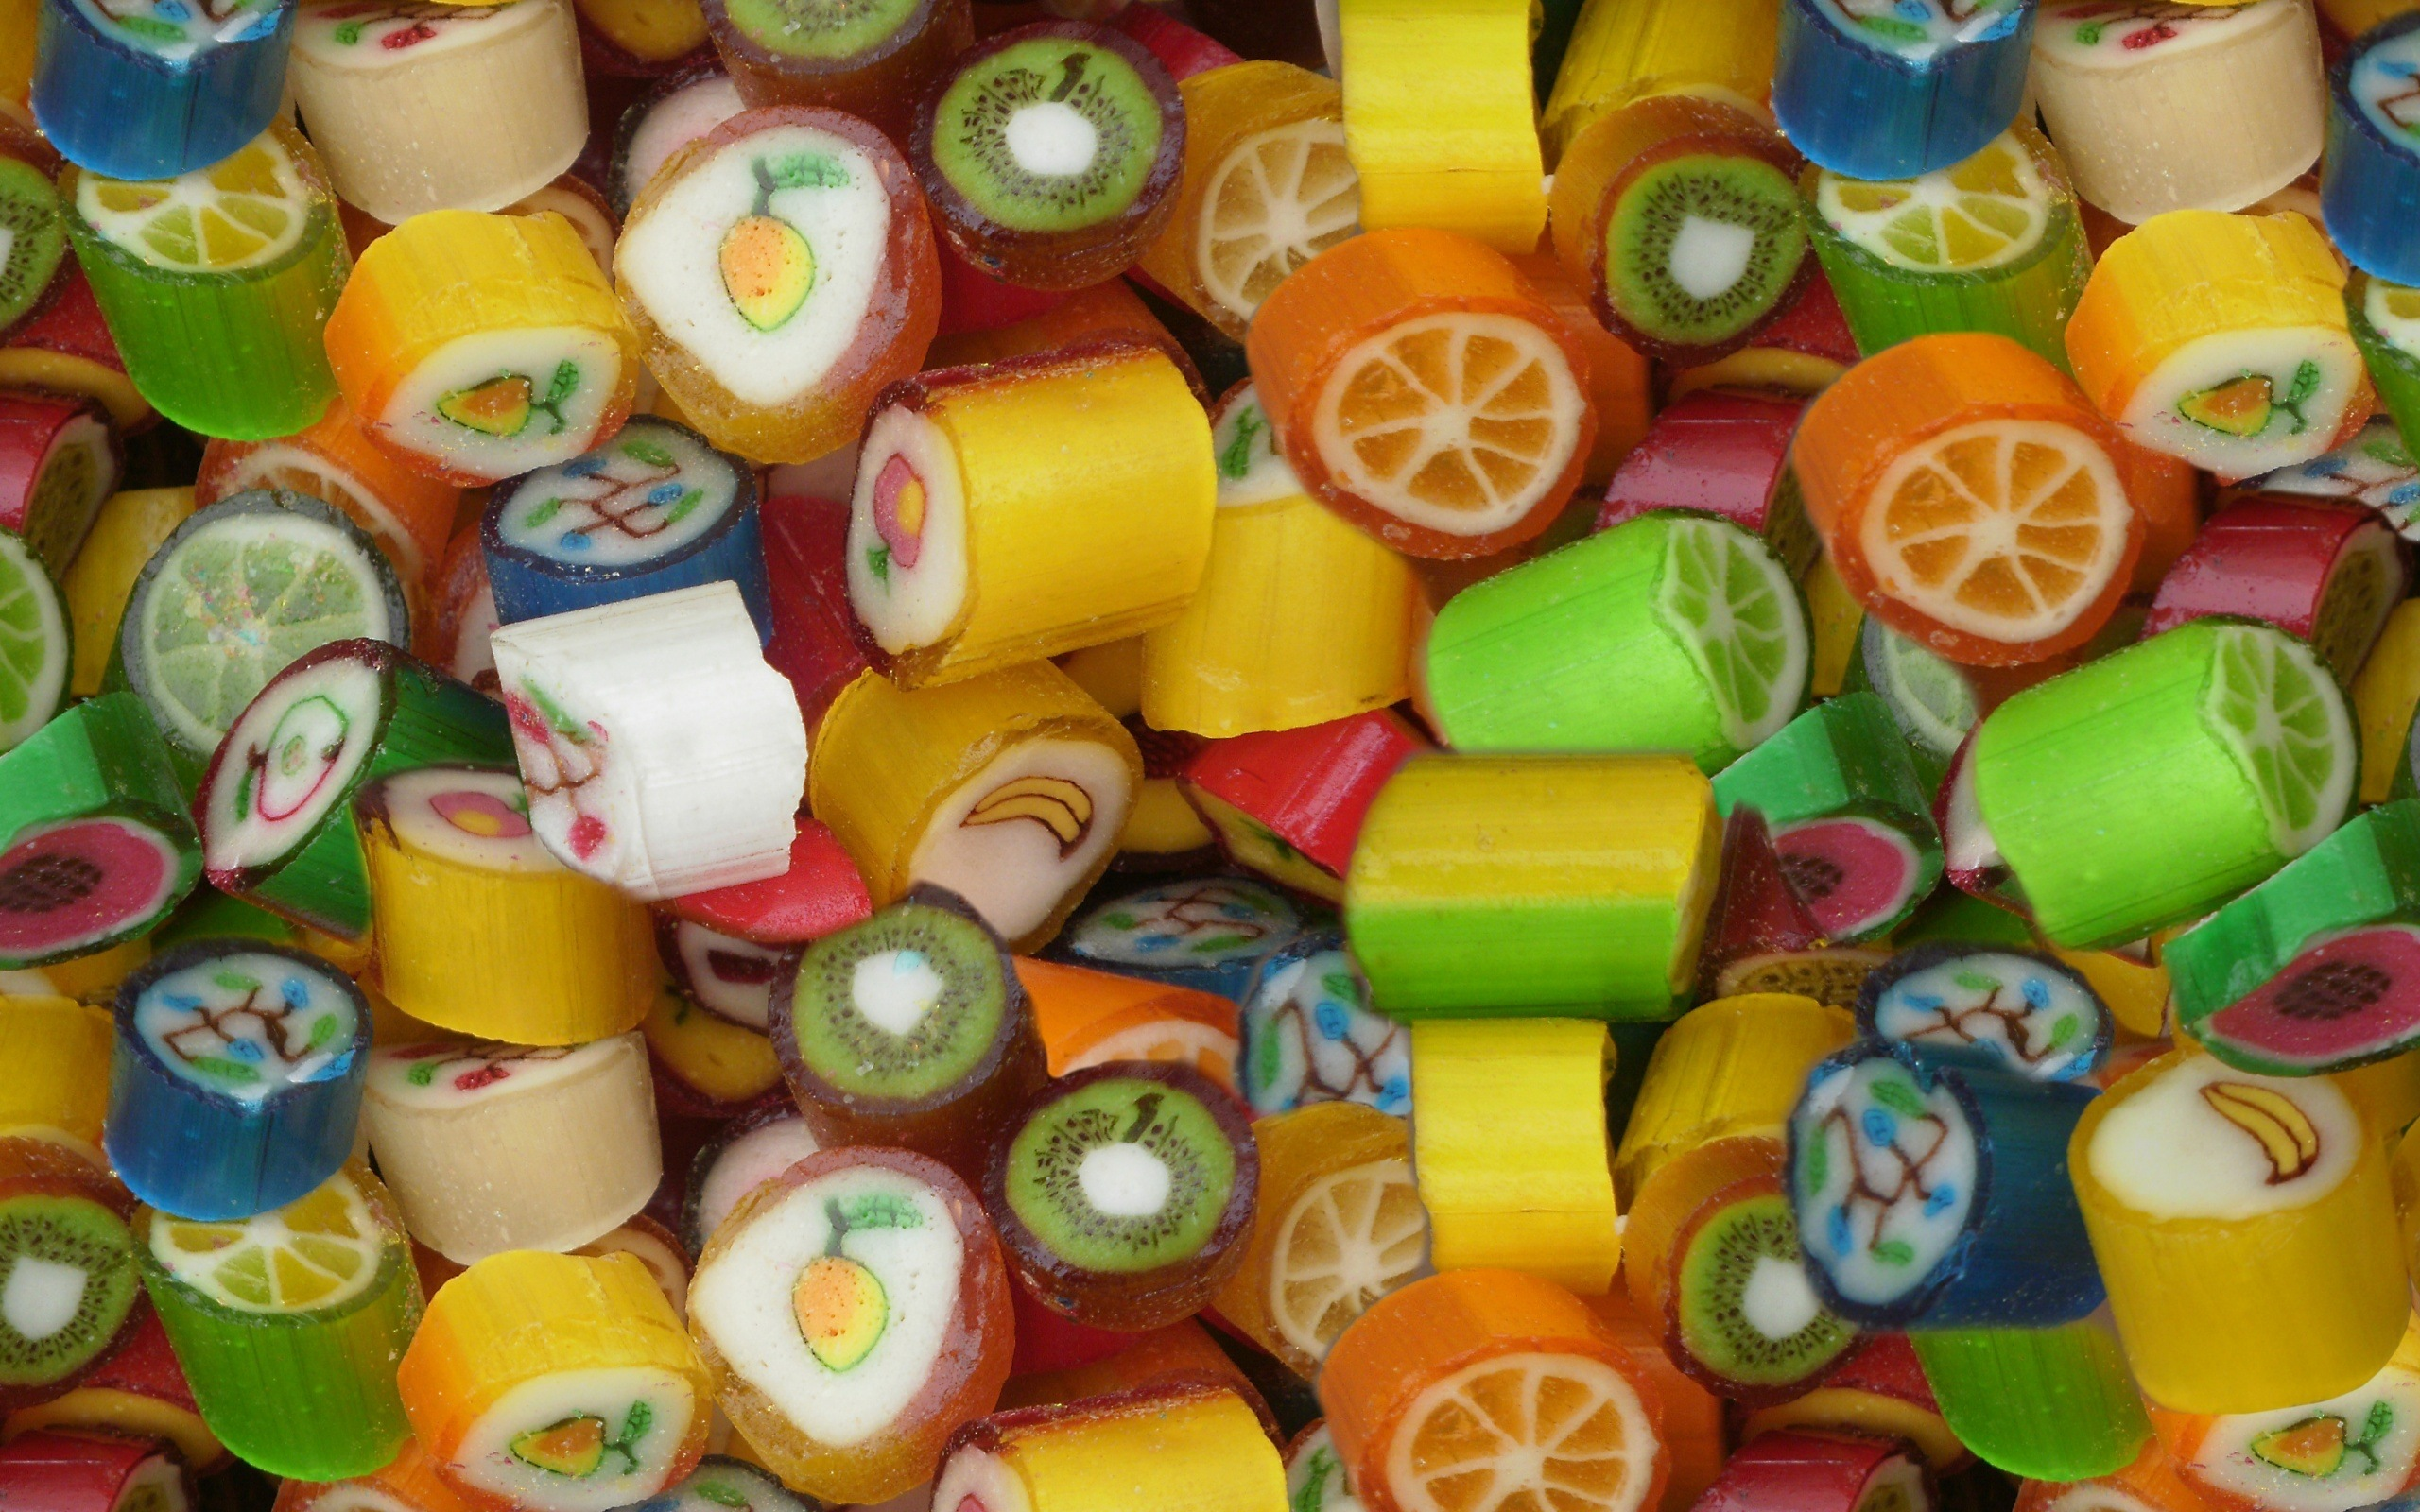 Fruit Candy Wallpaper With Images 2560×1600. Wallpapers 3d For Desktop Wallpaper